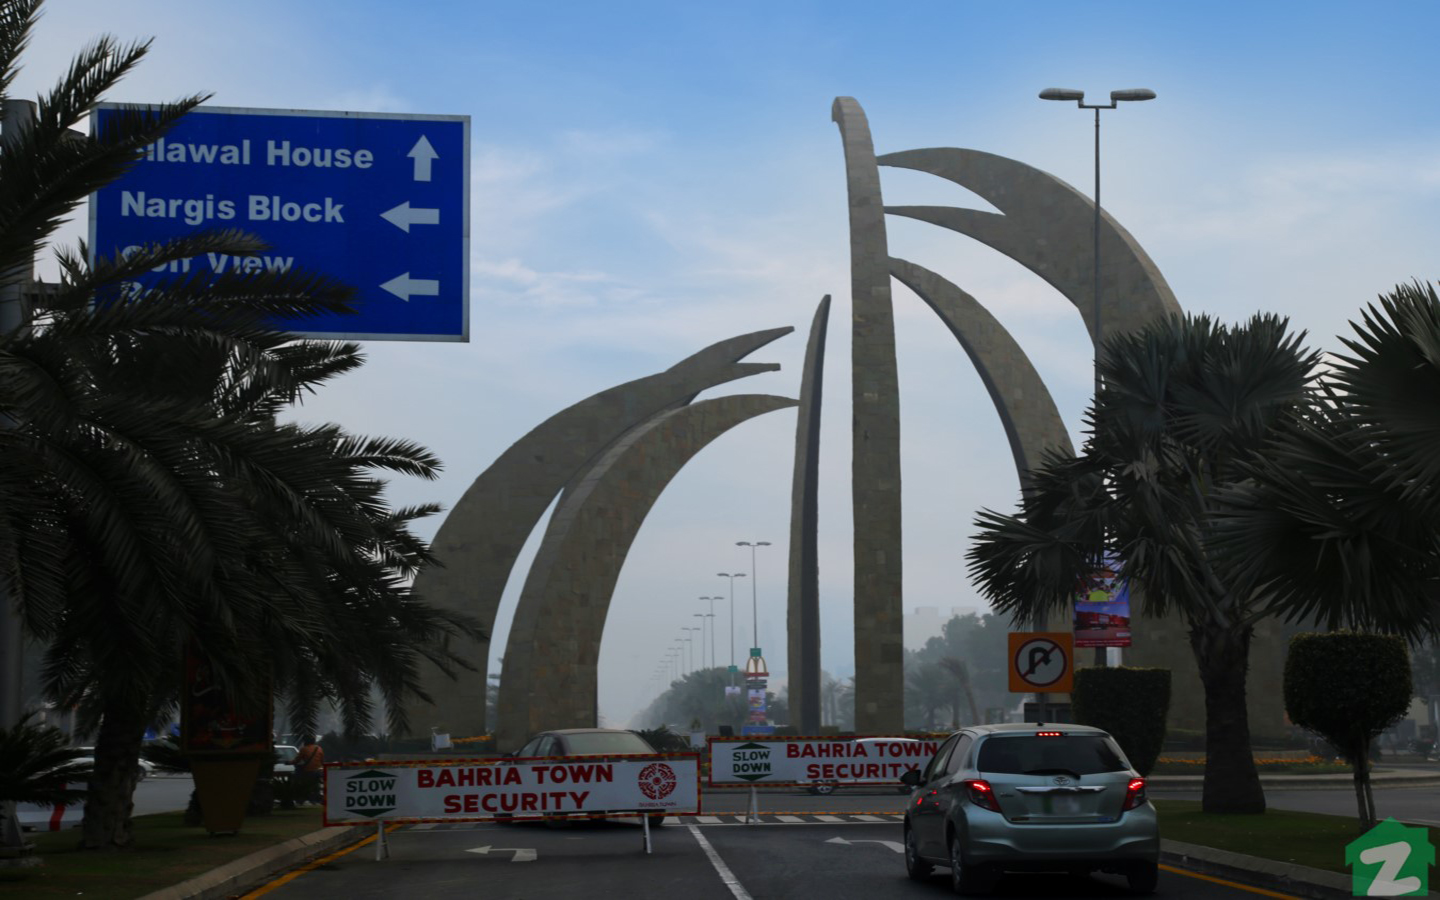 Bahria Town Lahore is a secure gated community